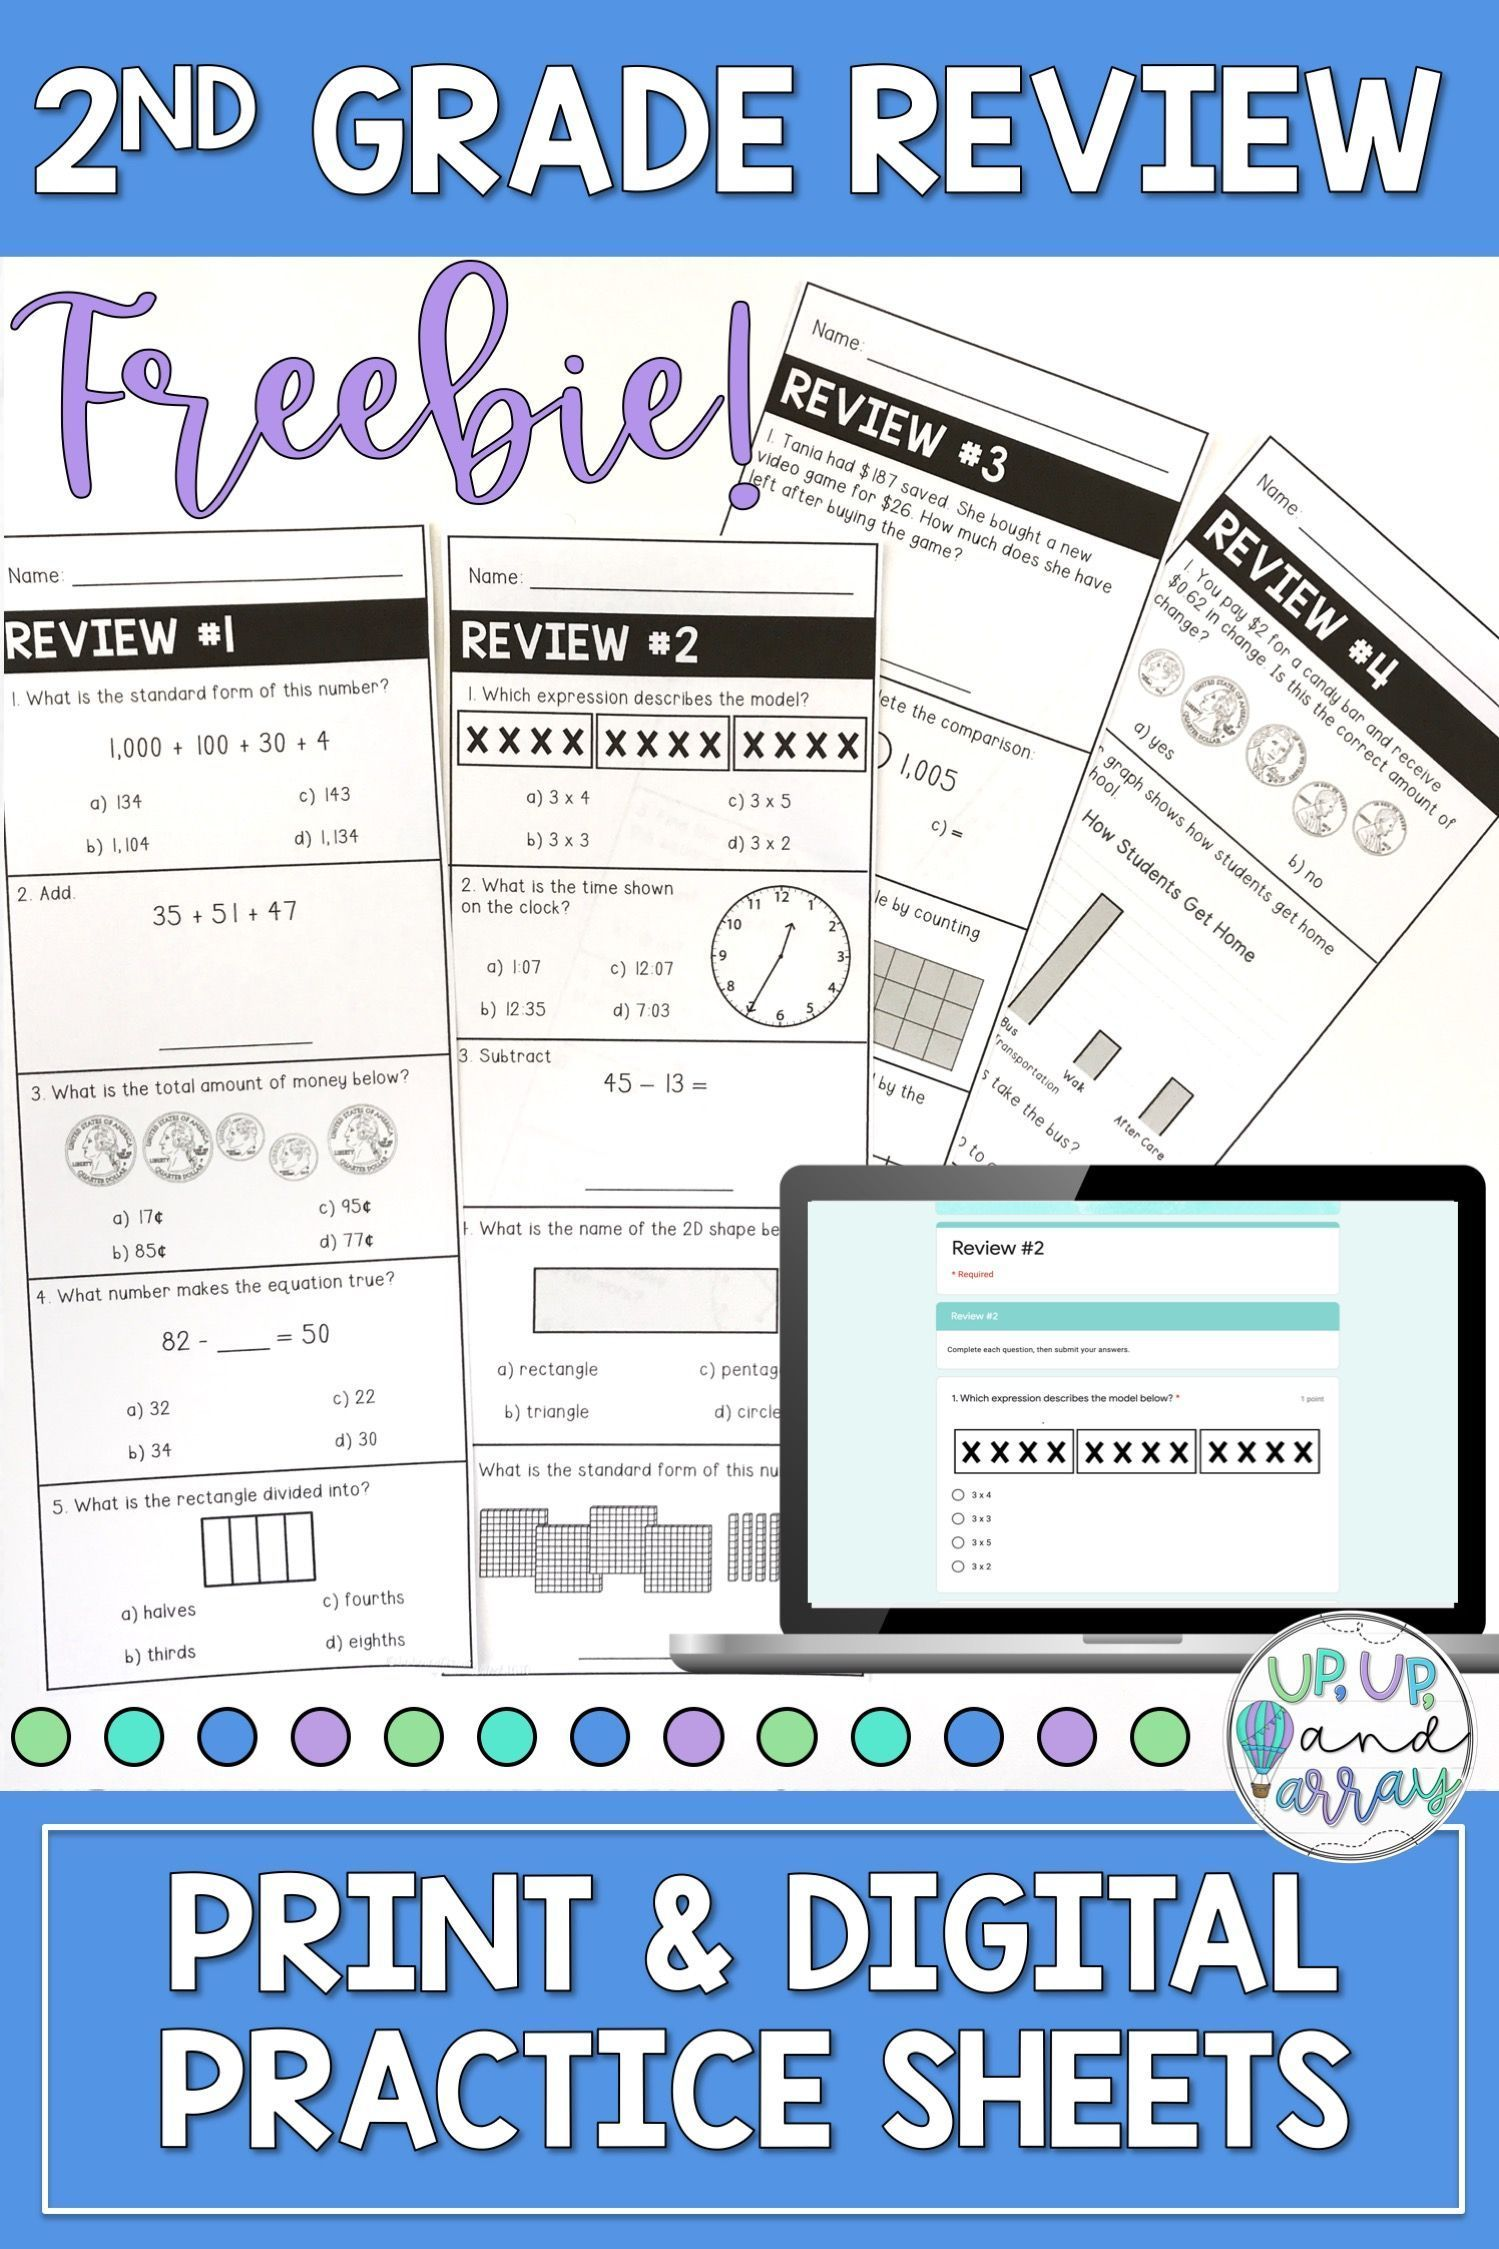 2nd Grade Math Review Skill Sheets Warm Ups Worksheets